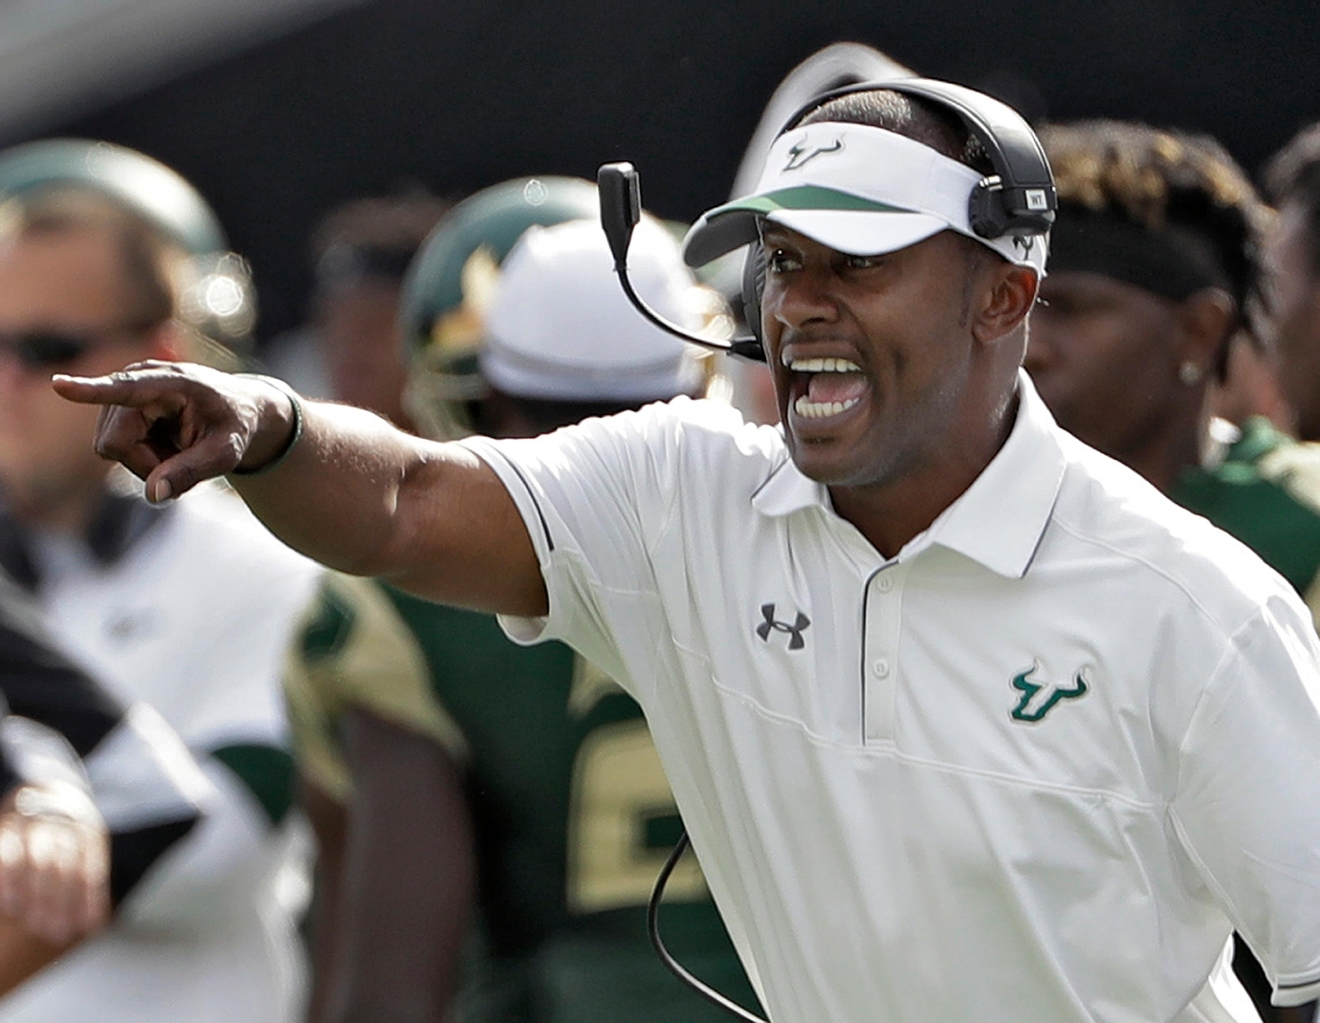 FILE - In this Nov. 26, 2016, file photo, South Florida head coach Willie Taggart shouts instructions to his team during the second half of an NCAA college football game against Central Florida, in Tampa, Fla. South Florida football coach Willie Taggart has informed the school that he is leaving to become the coach at Oregon, a person with direct knowledge of the situation tells The Associated Press. The person spoke on condition of anonymity because neither school was prepared to make an official announcement. (AP Photo/Chris O'Meara, File)